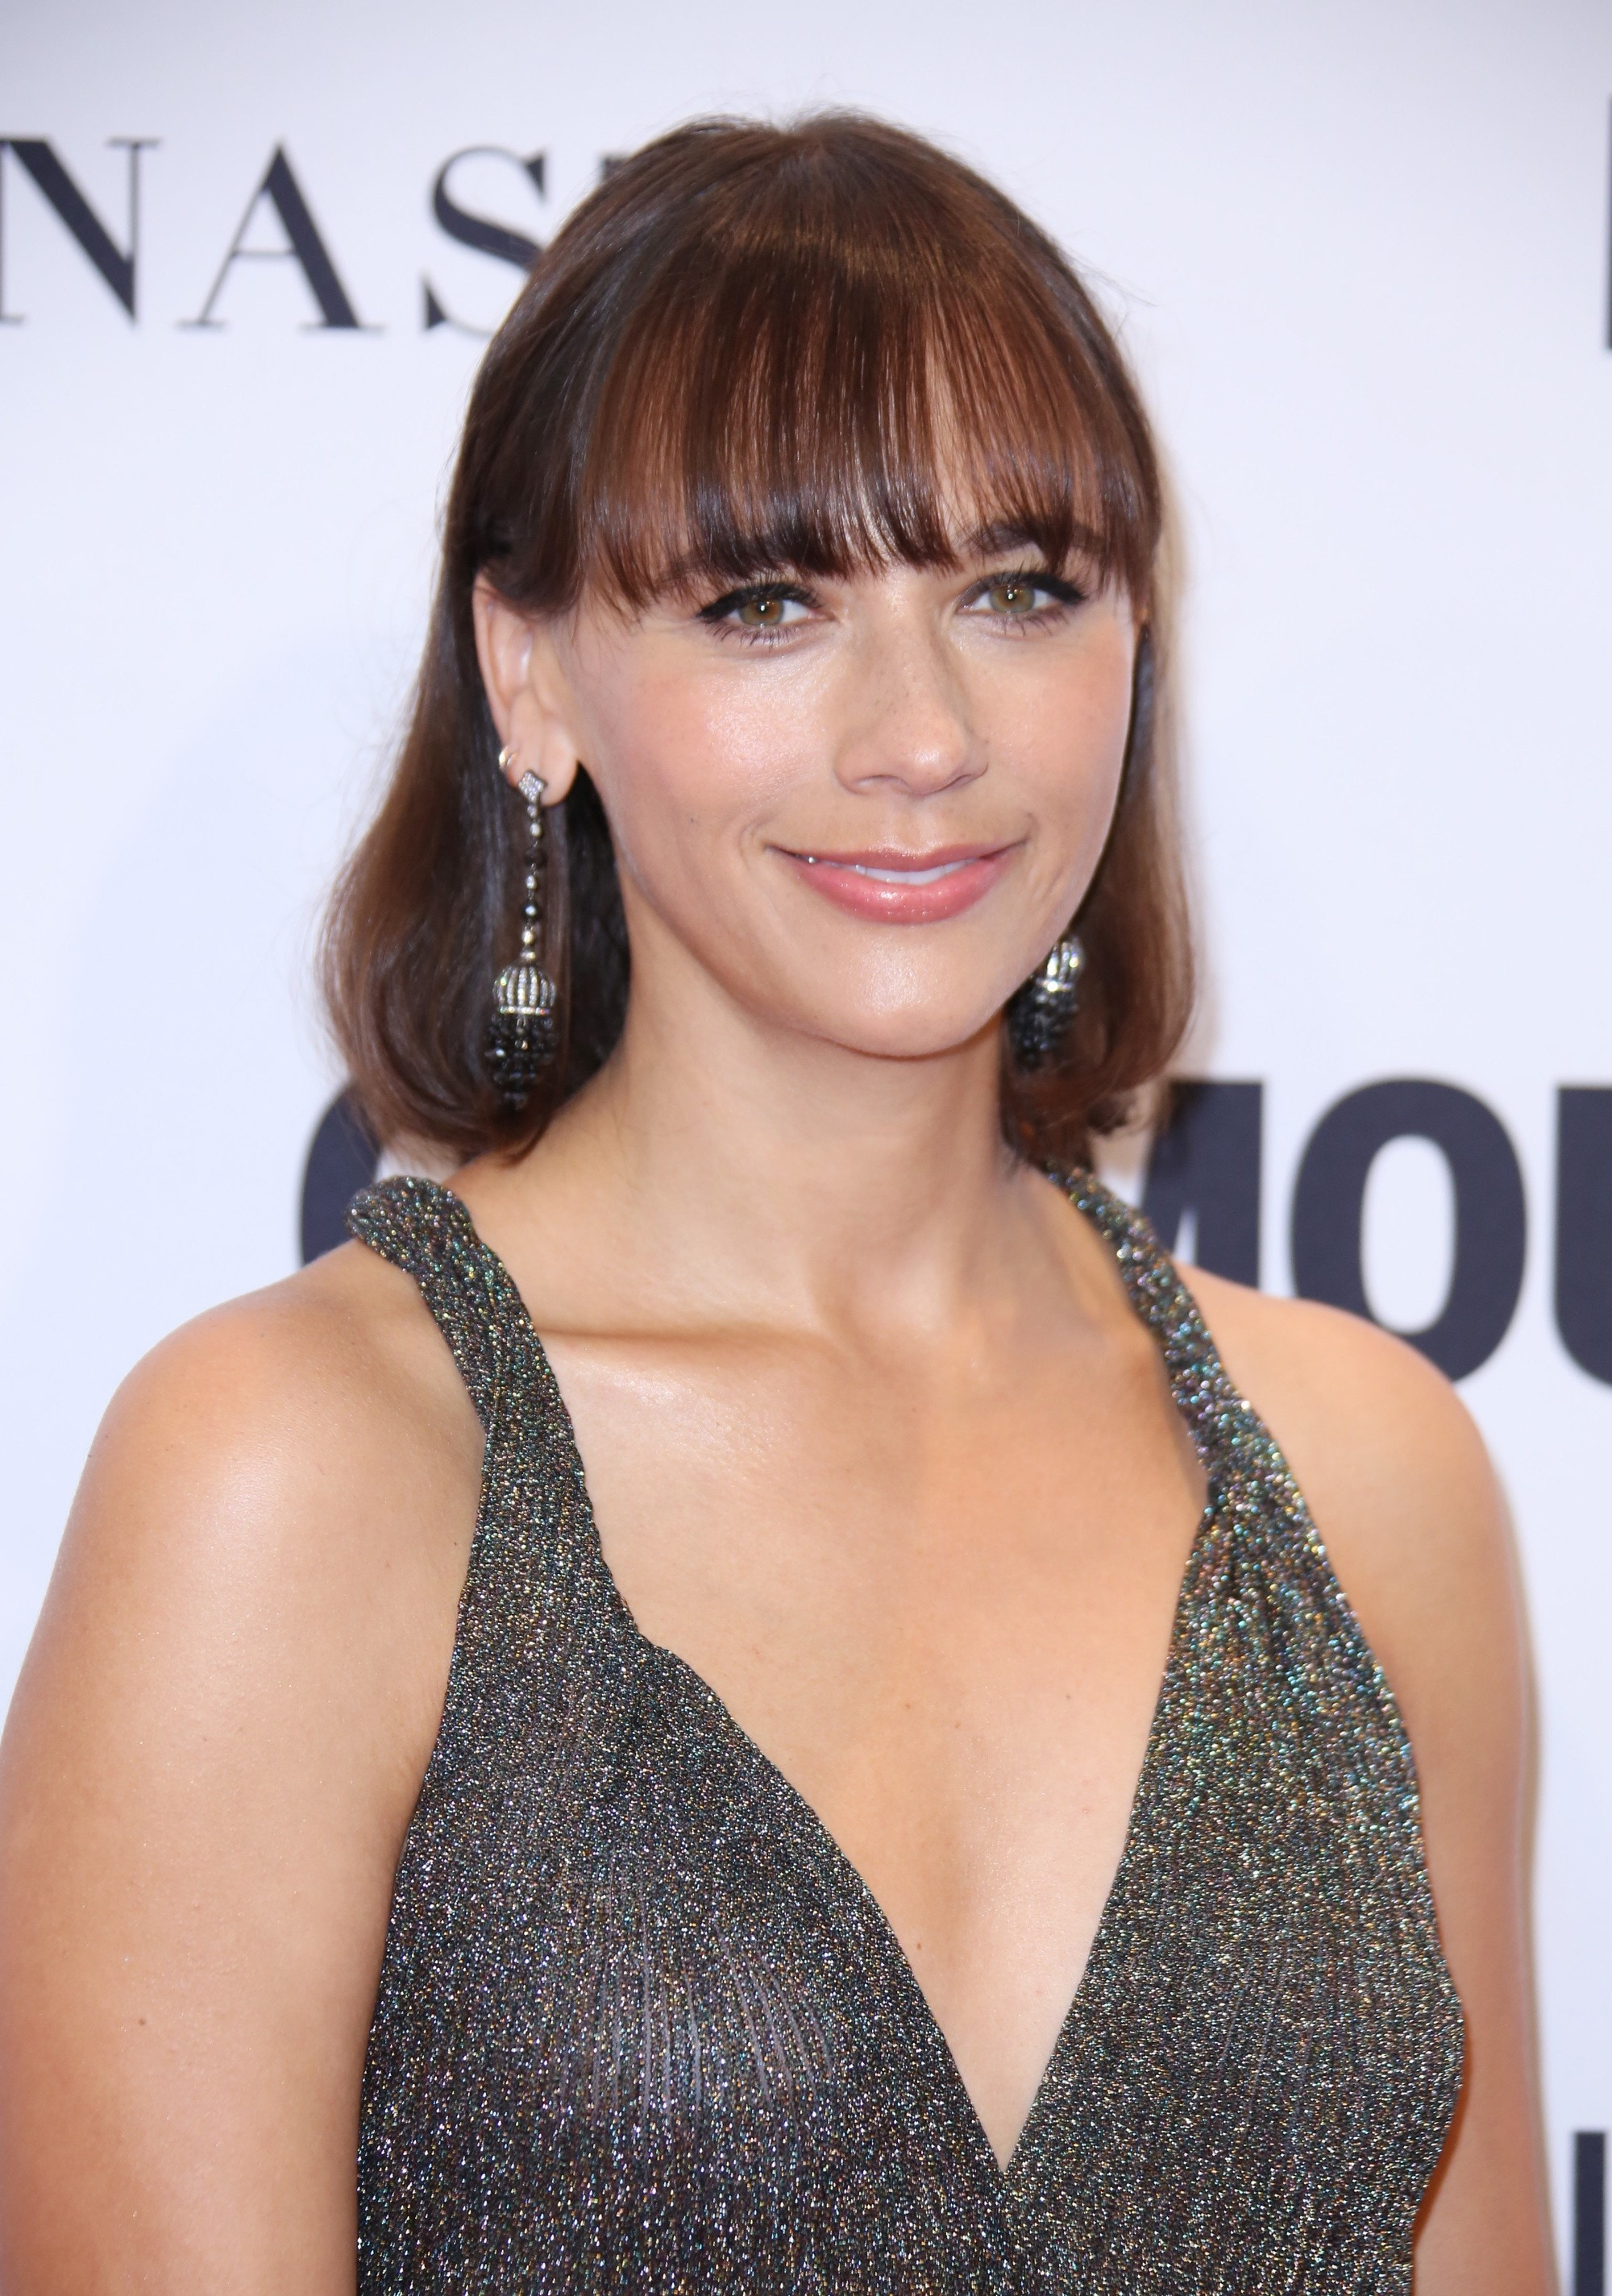 Rashida Jones nudes (81 pictures), photos Sideboobs, Snapchat, legs 2019